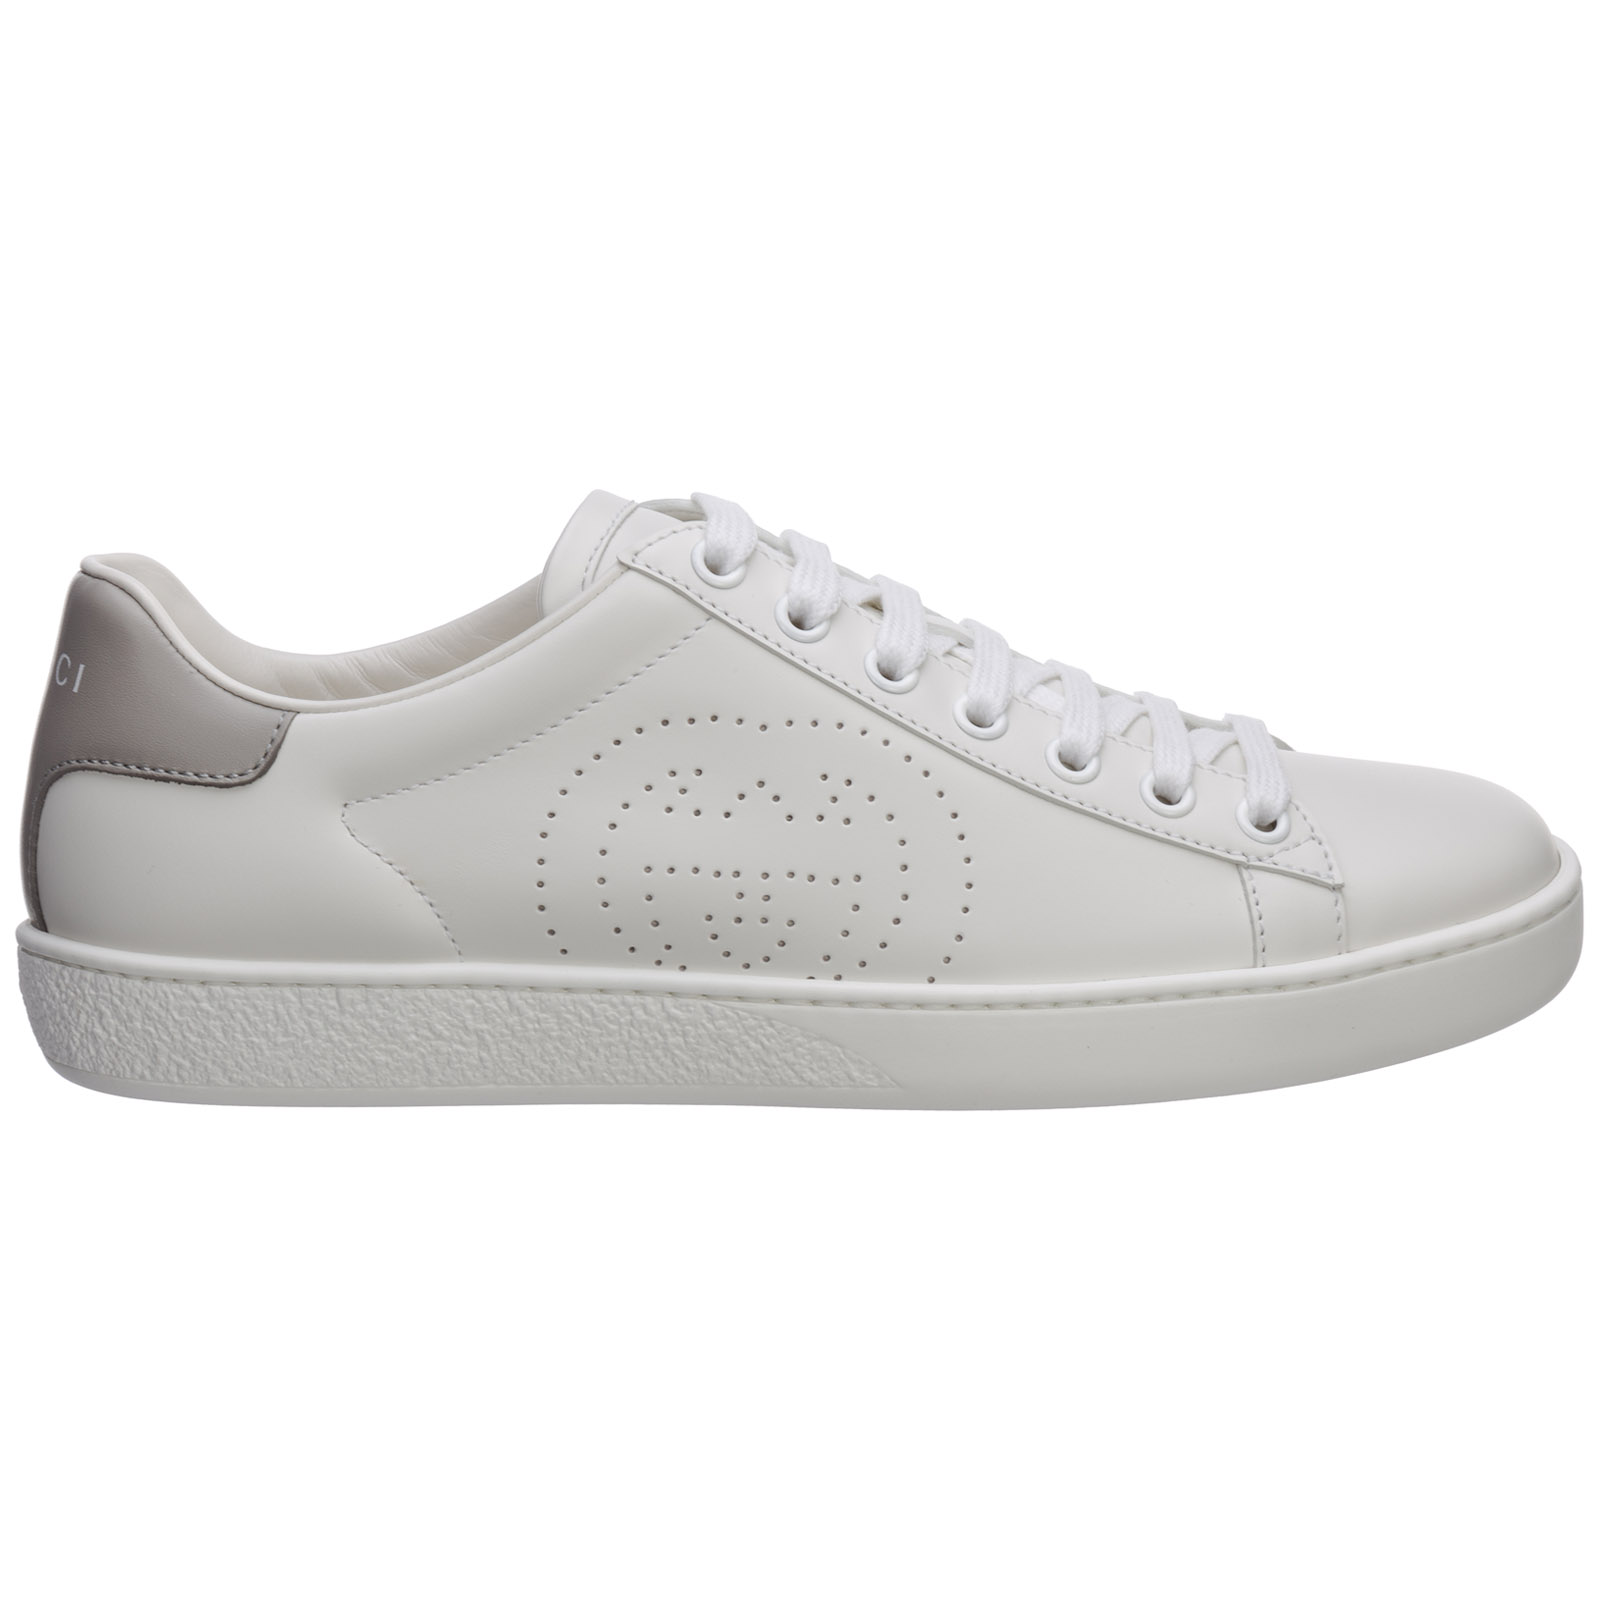 Gucci WOMEN'S SHOES LEATHER TRAINERS SNEAKERS ACE GG